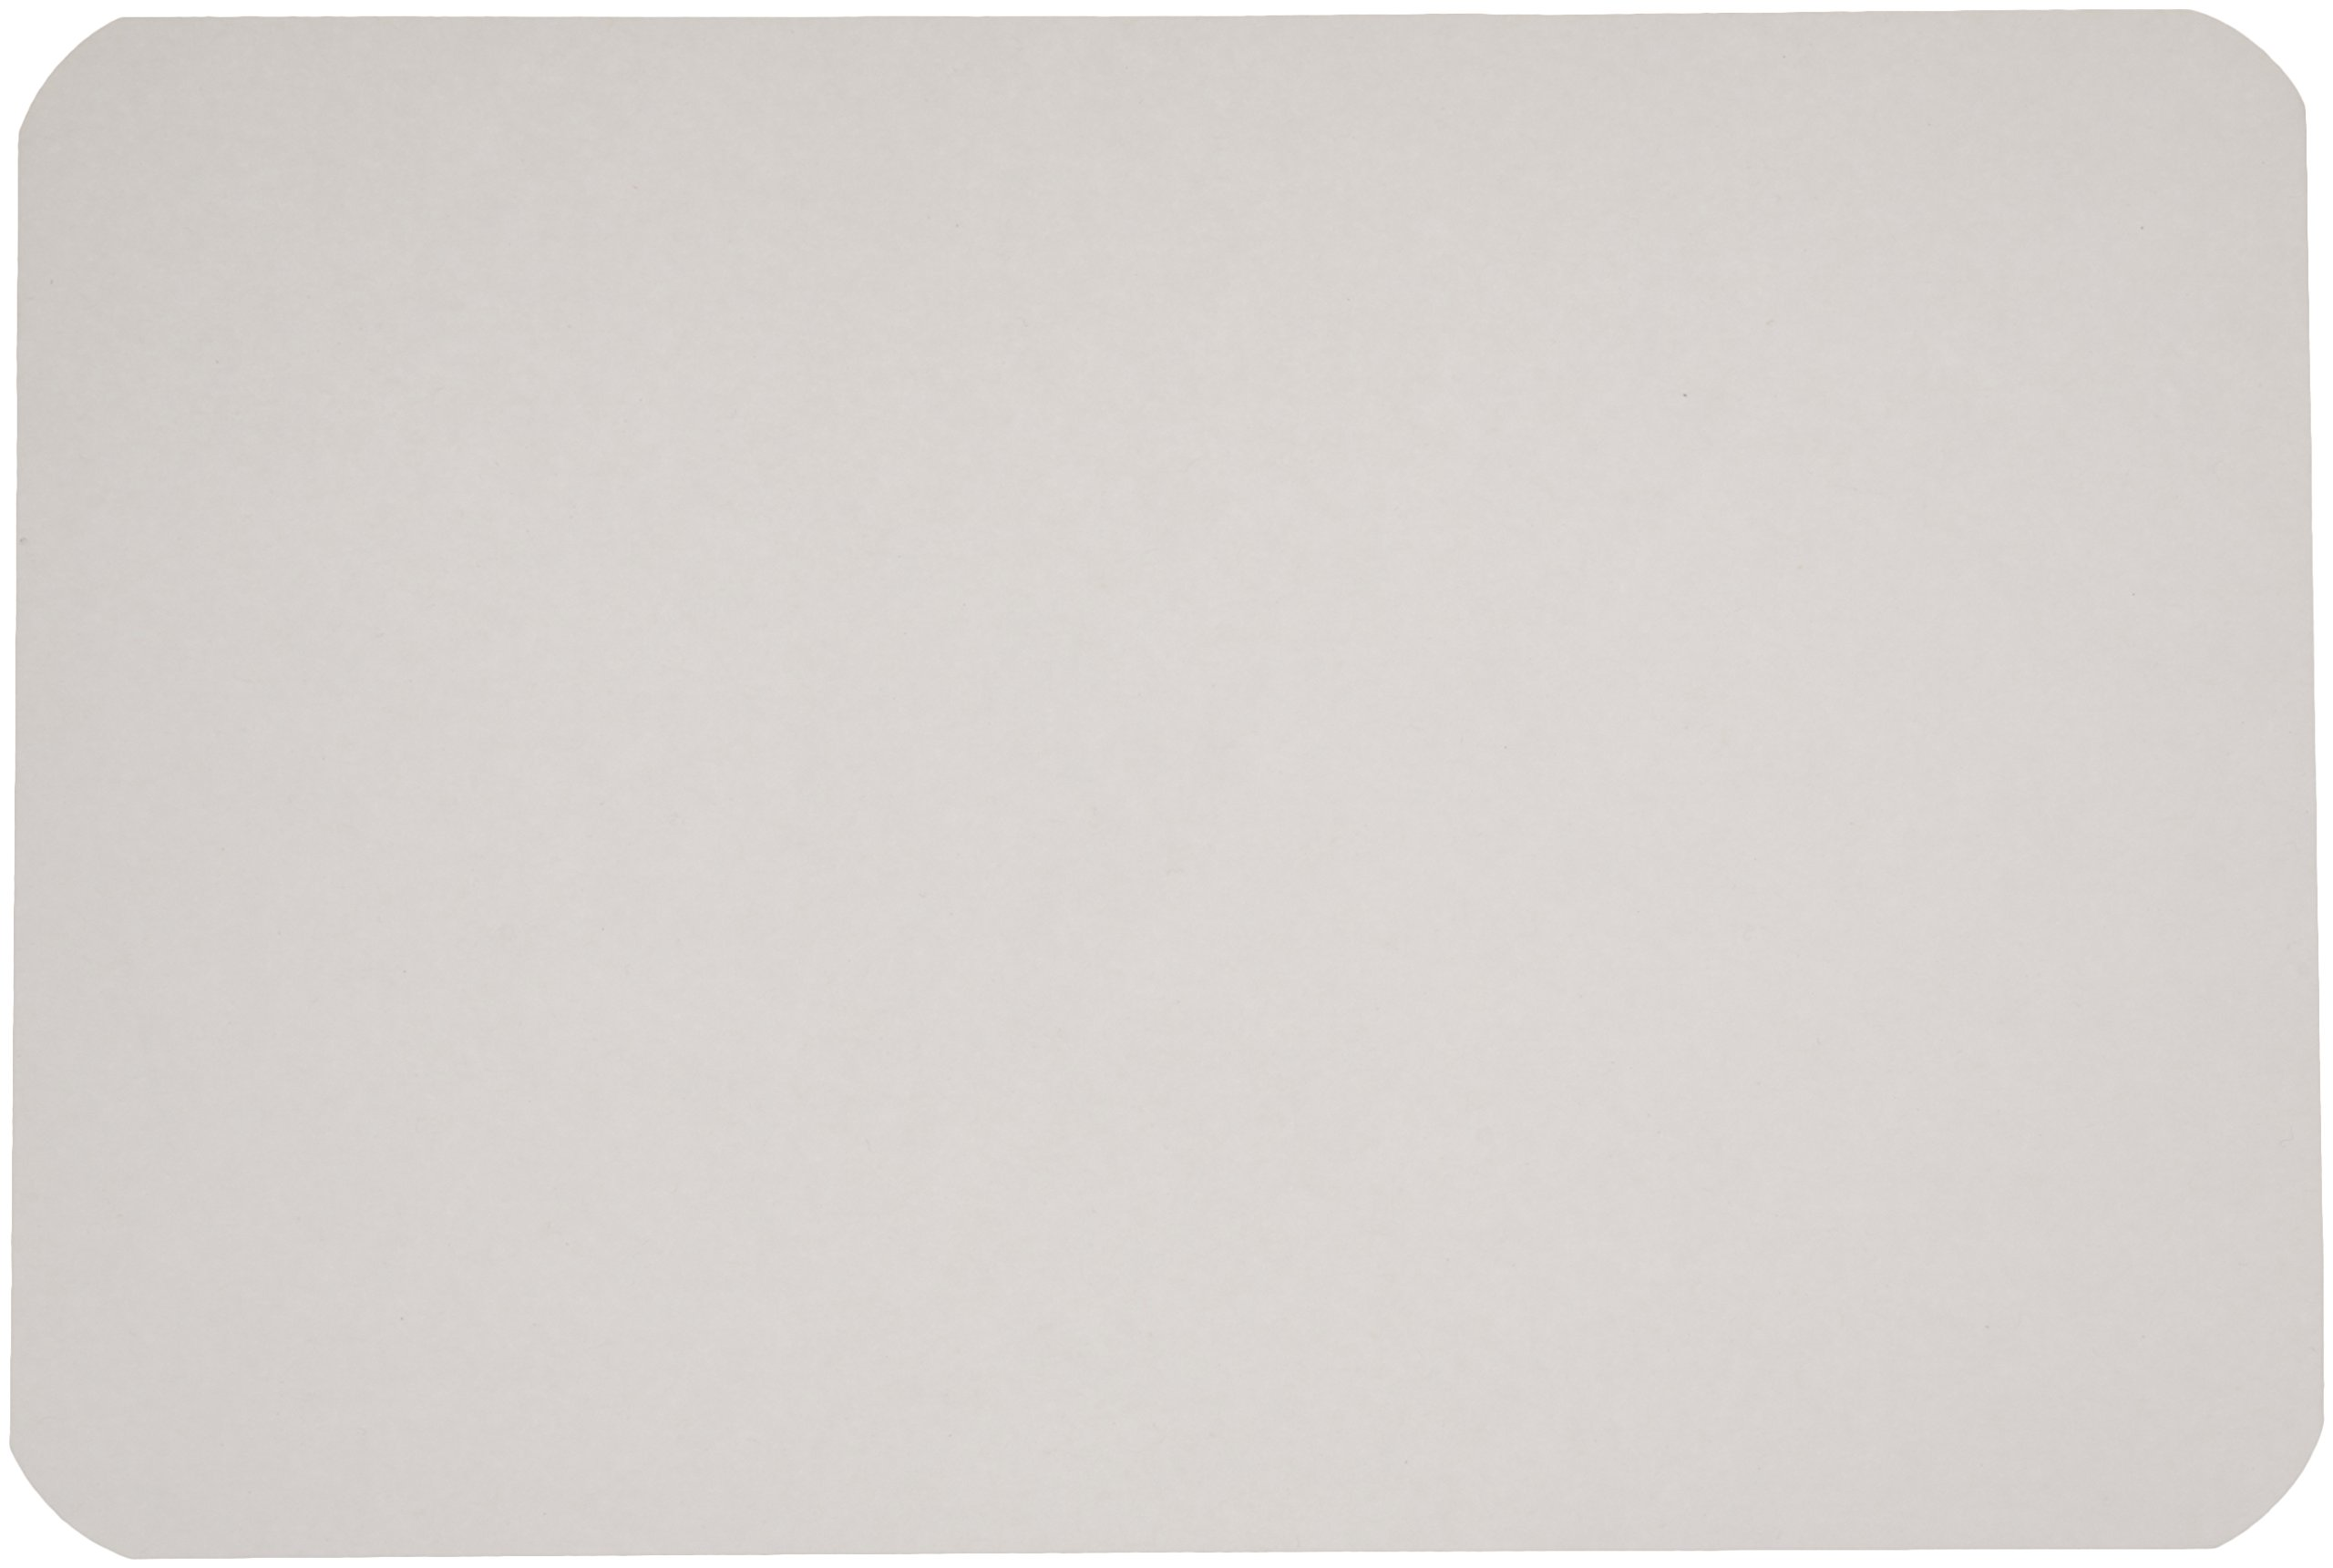 Medicom 5595 Dental Tray Cover, Paper Stock, 9'' x 13-1/2'' Size, White (Pack of 1000)